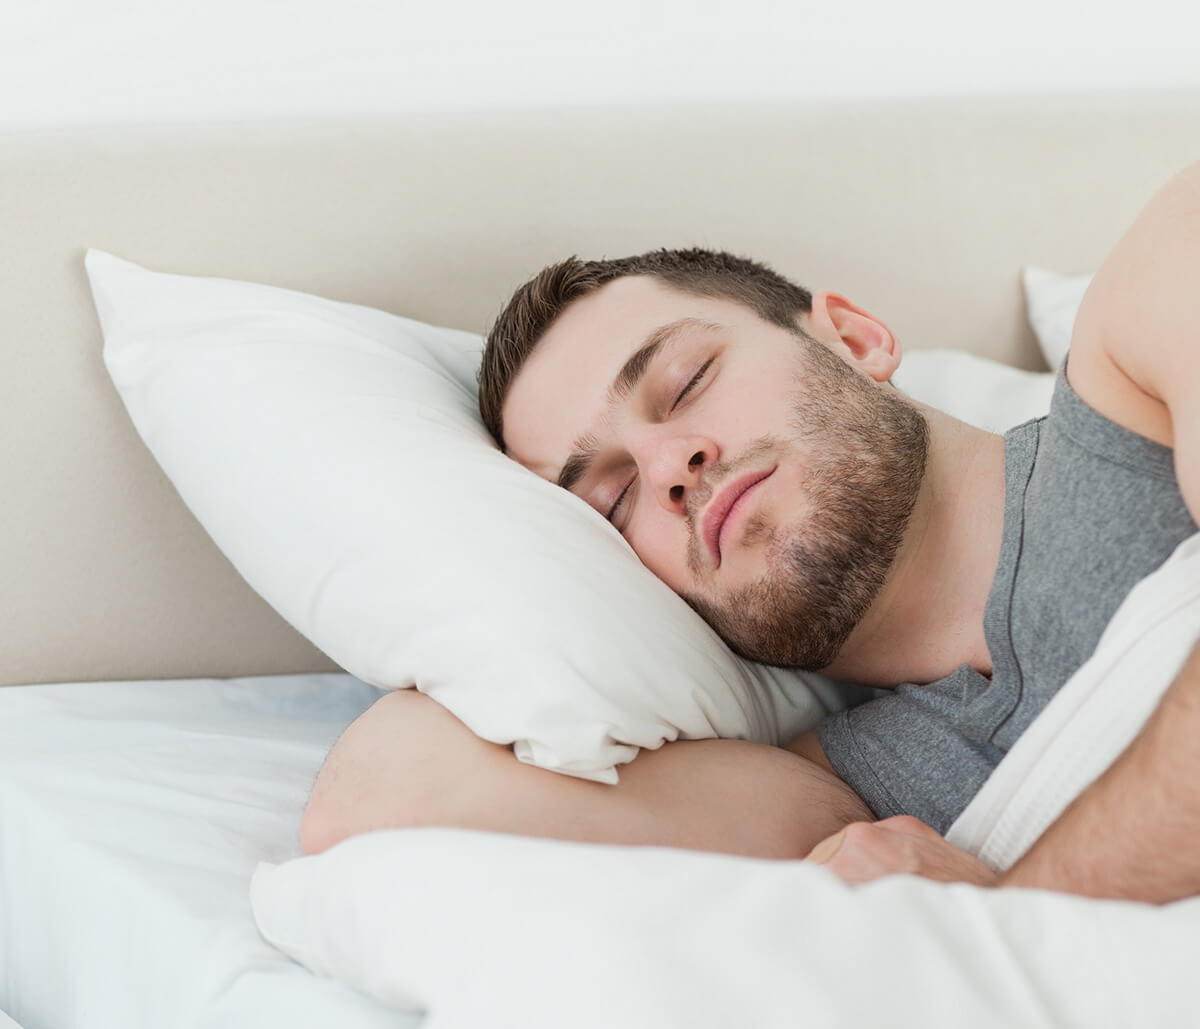 Effective sleep apnea treatment without CPAP offered in Willoughby Hills